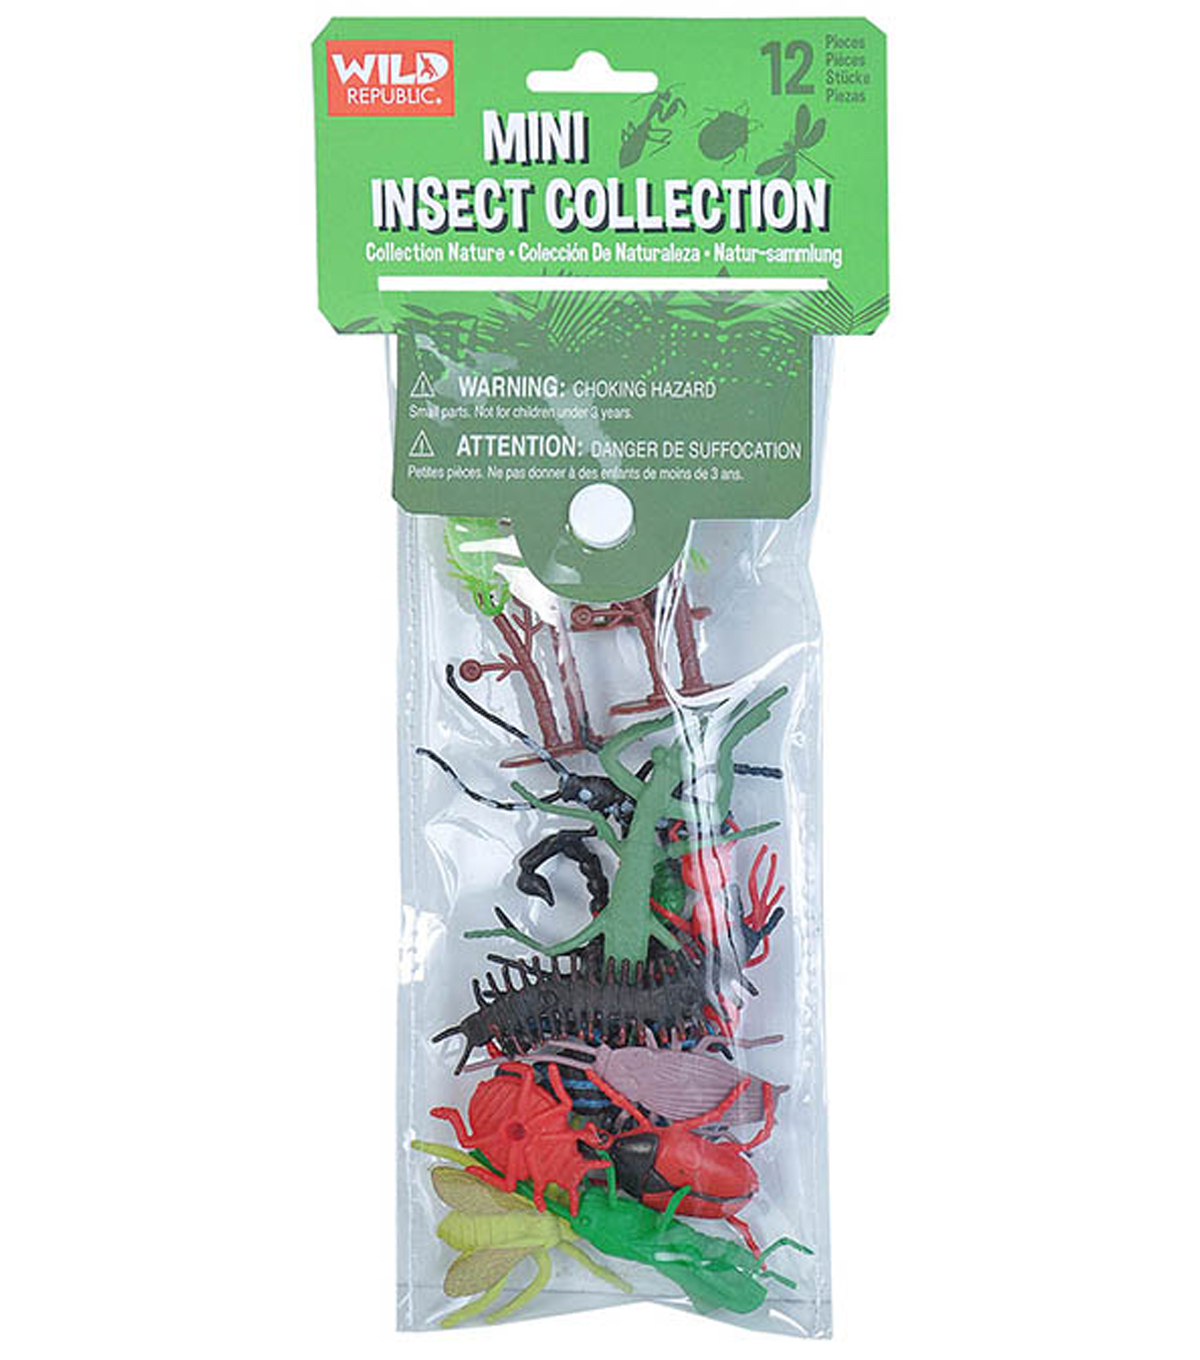 Wild Republic Mini Insect Collection